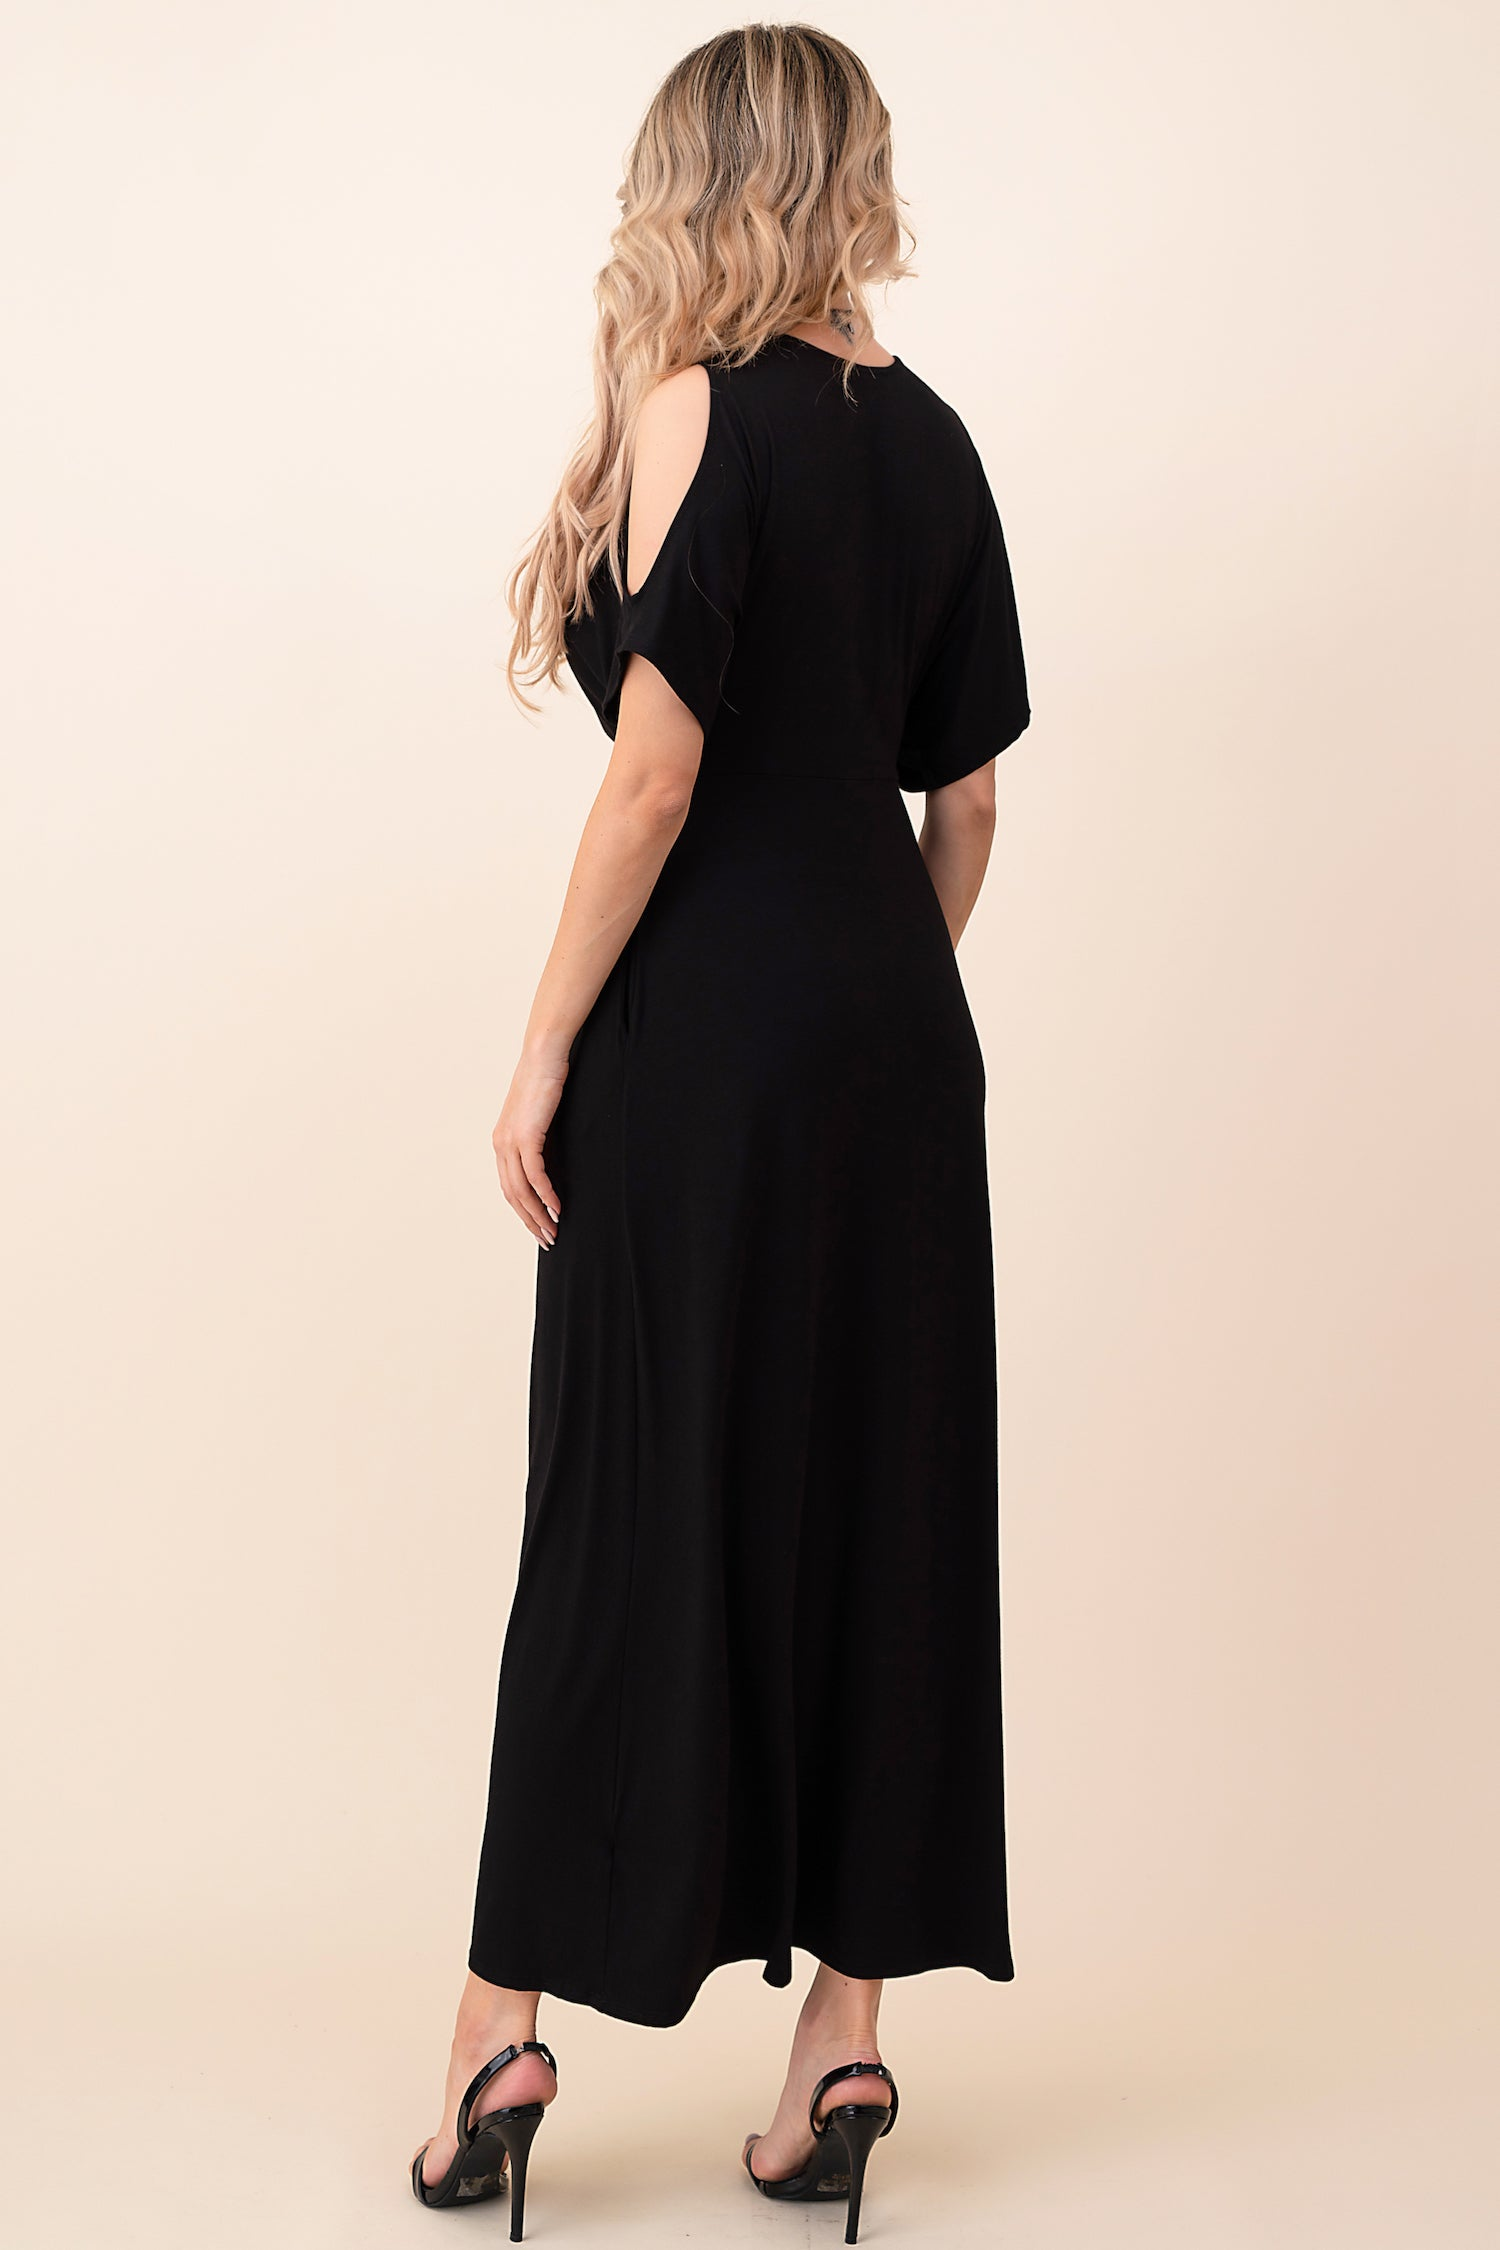 Front Twist Cold Shoulder Maxi Dress - besties STUDIOS